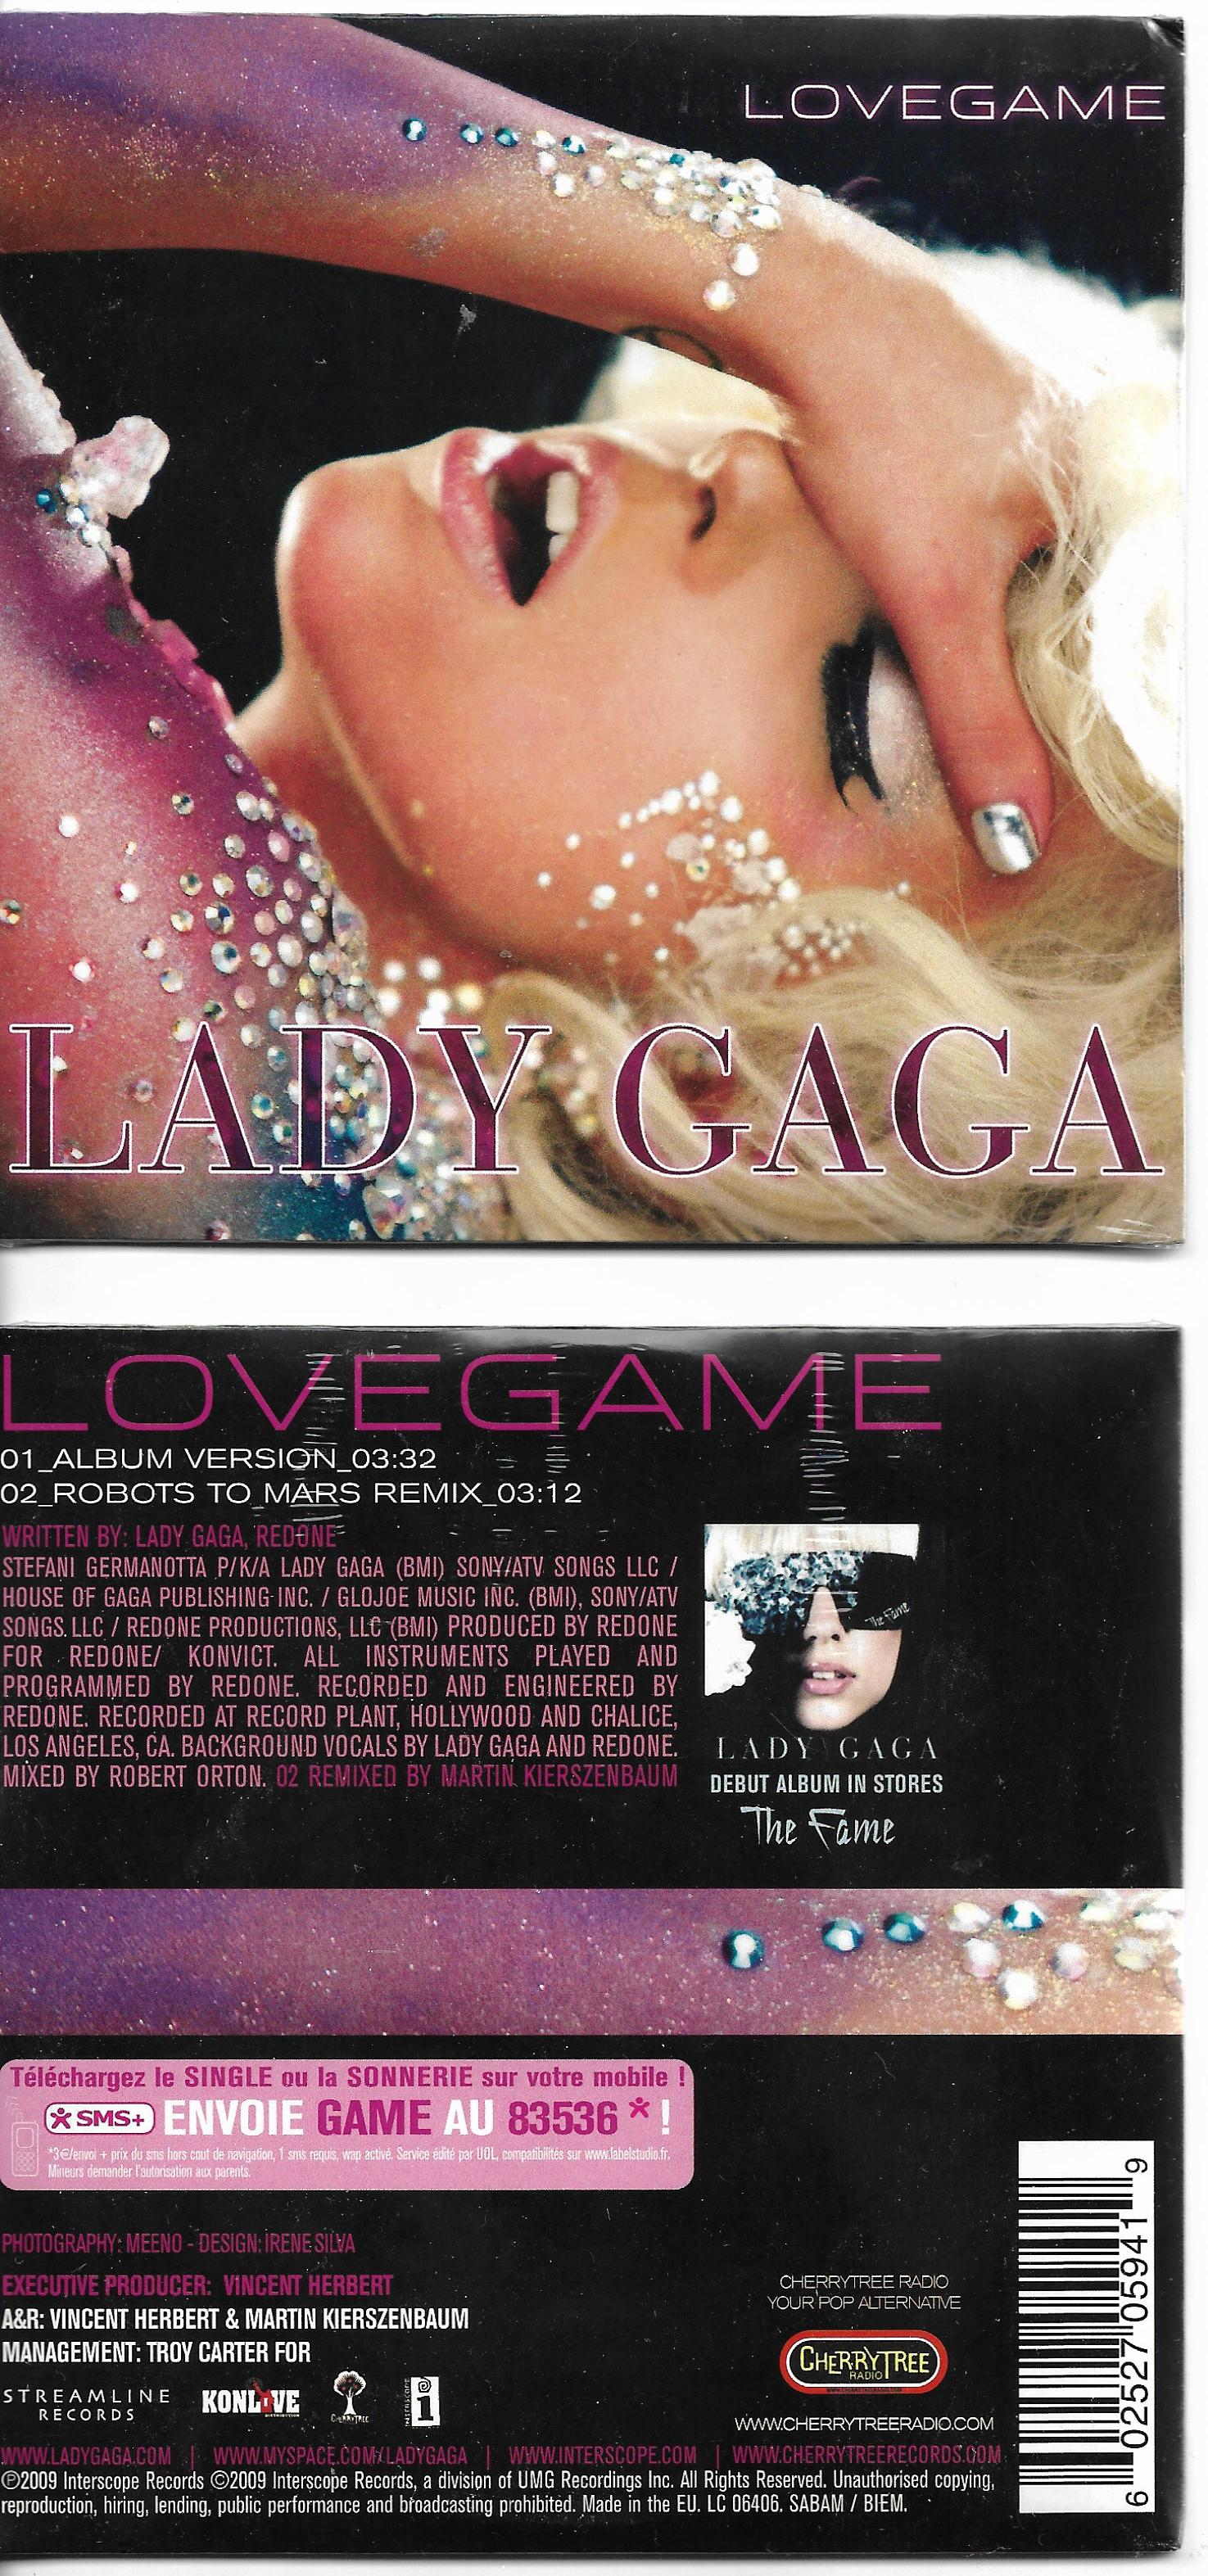 LADY GAGA - Lovegame 2-track CARD SLEEVE - France - - CD single